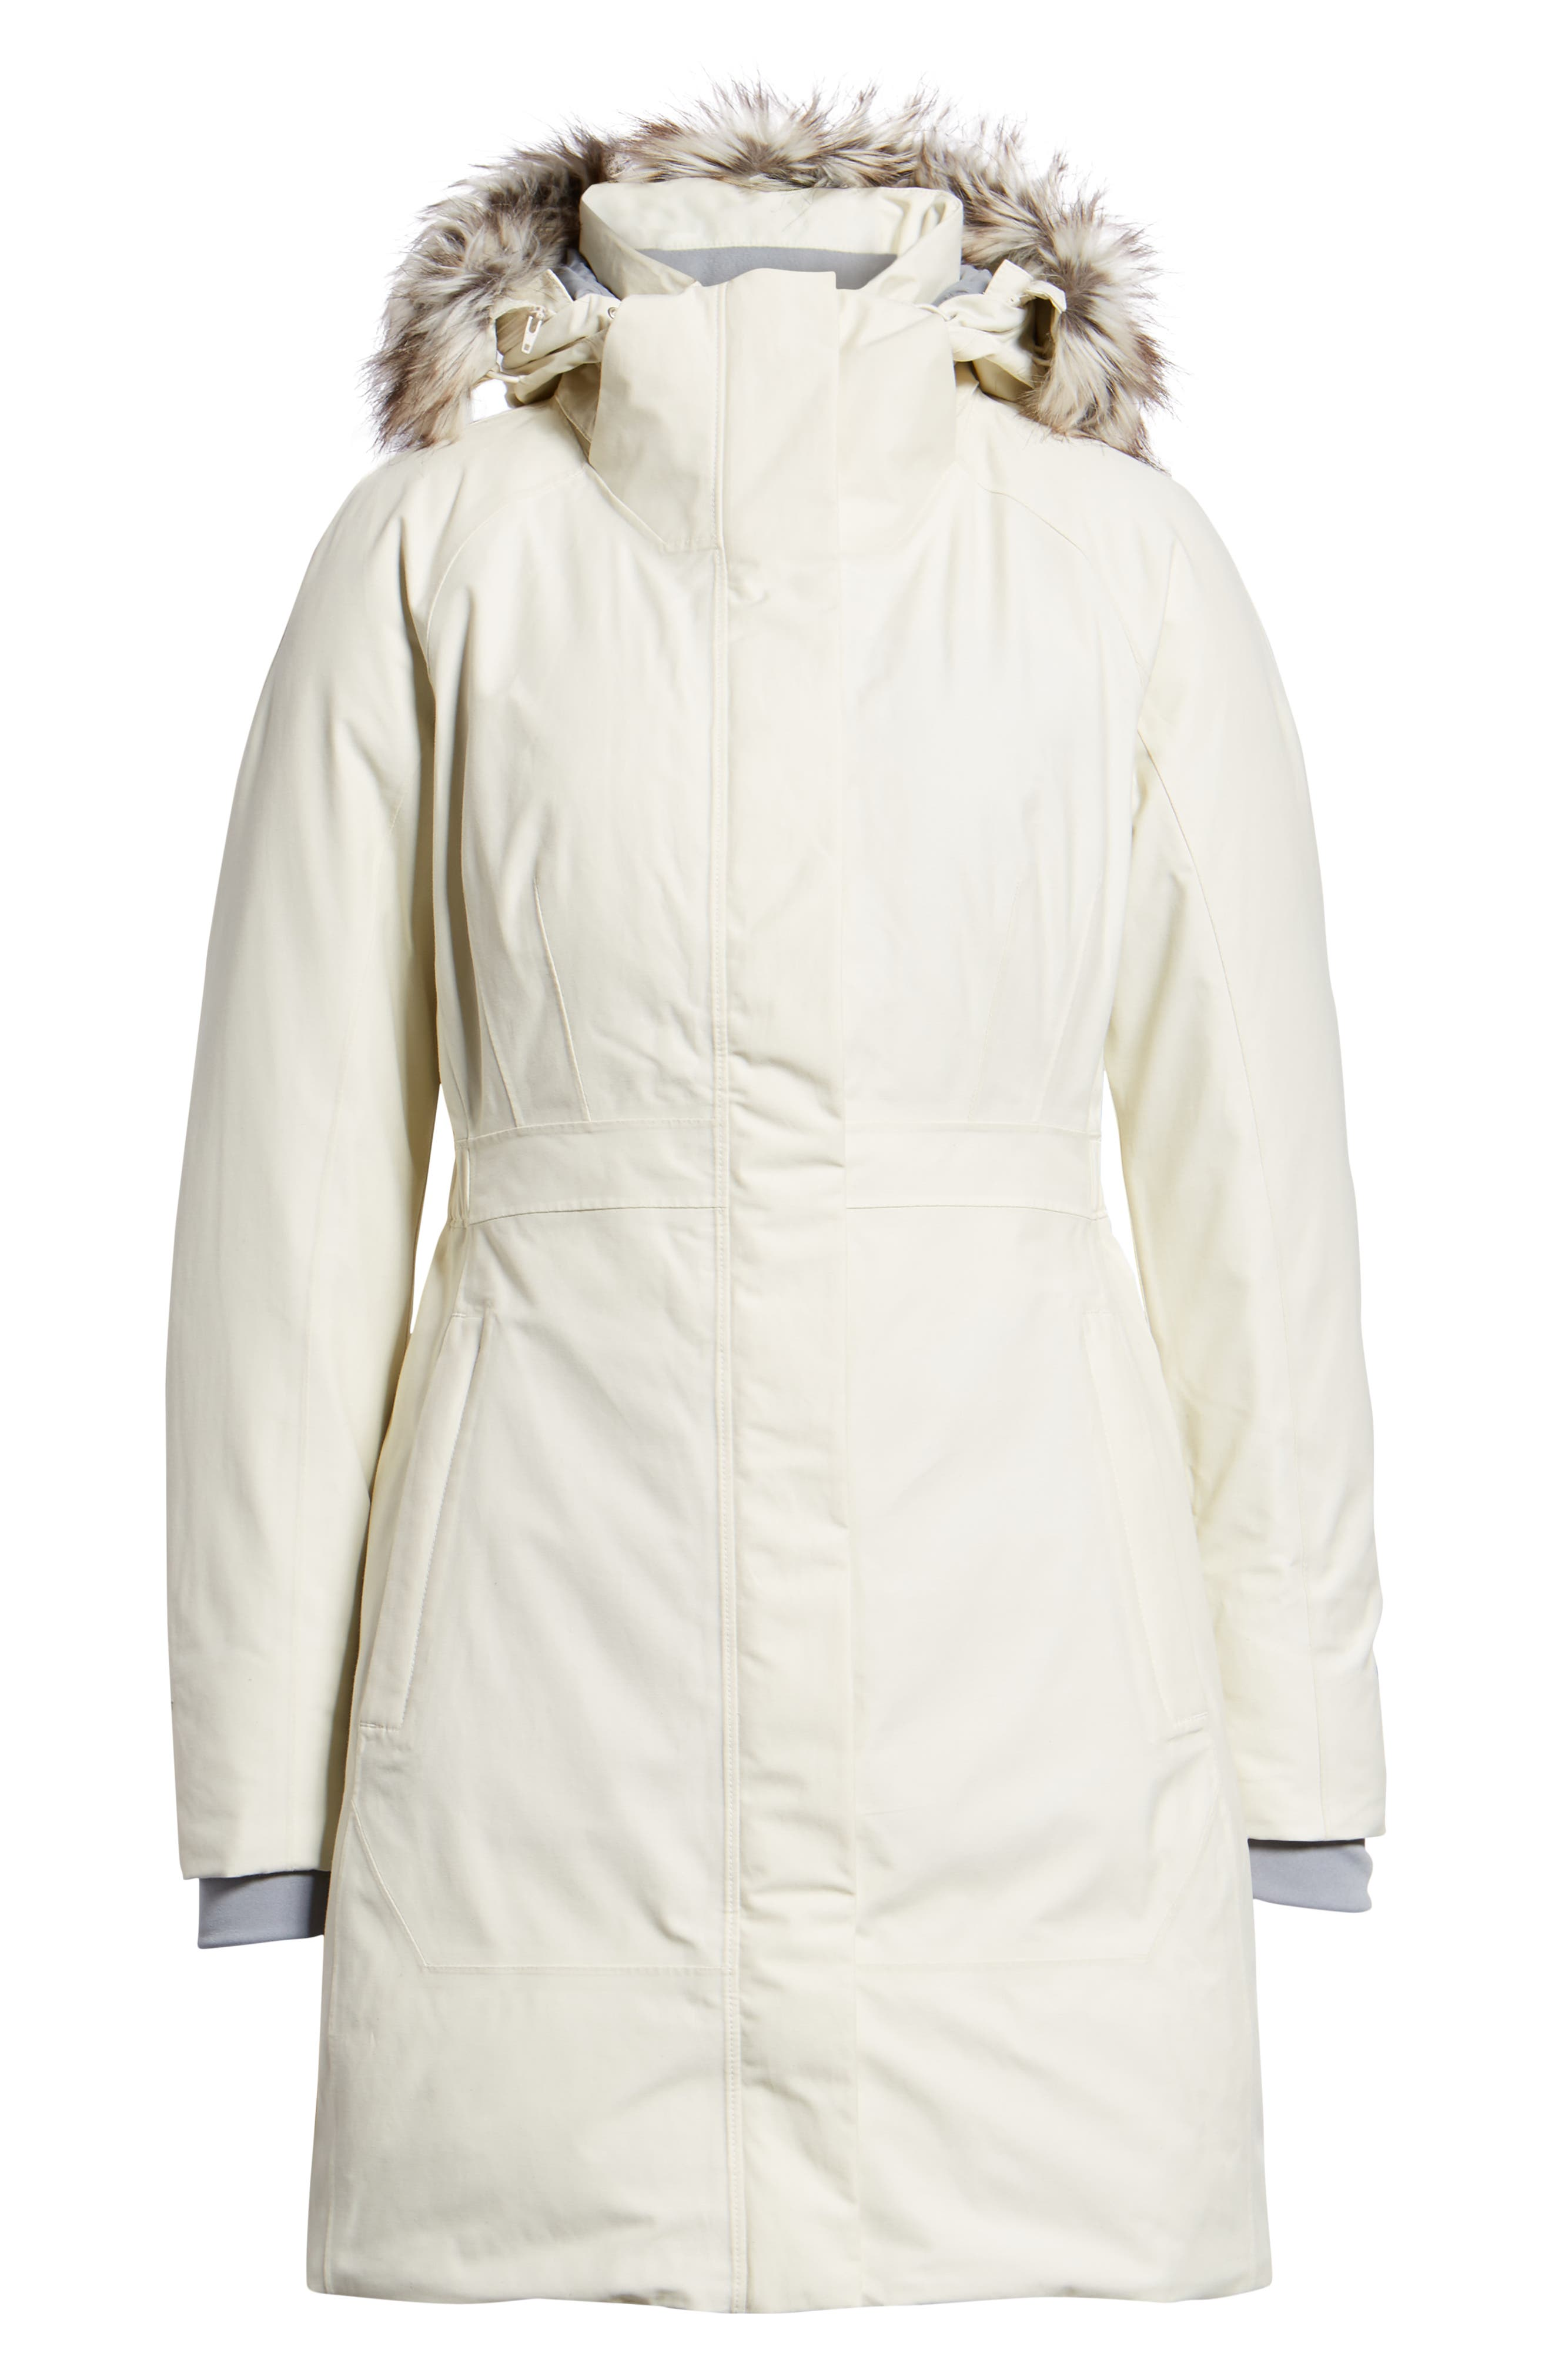 Arctic II Waterproof 550 Fill Power Down Parka with Faux Fur Trim,                             Alternate thumbnail 5, color,                             VINTAGE WHITE